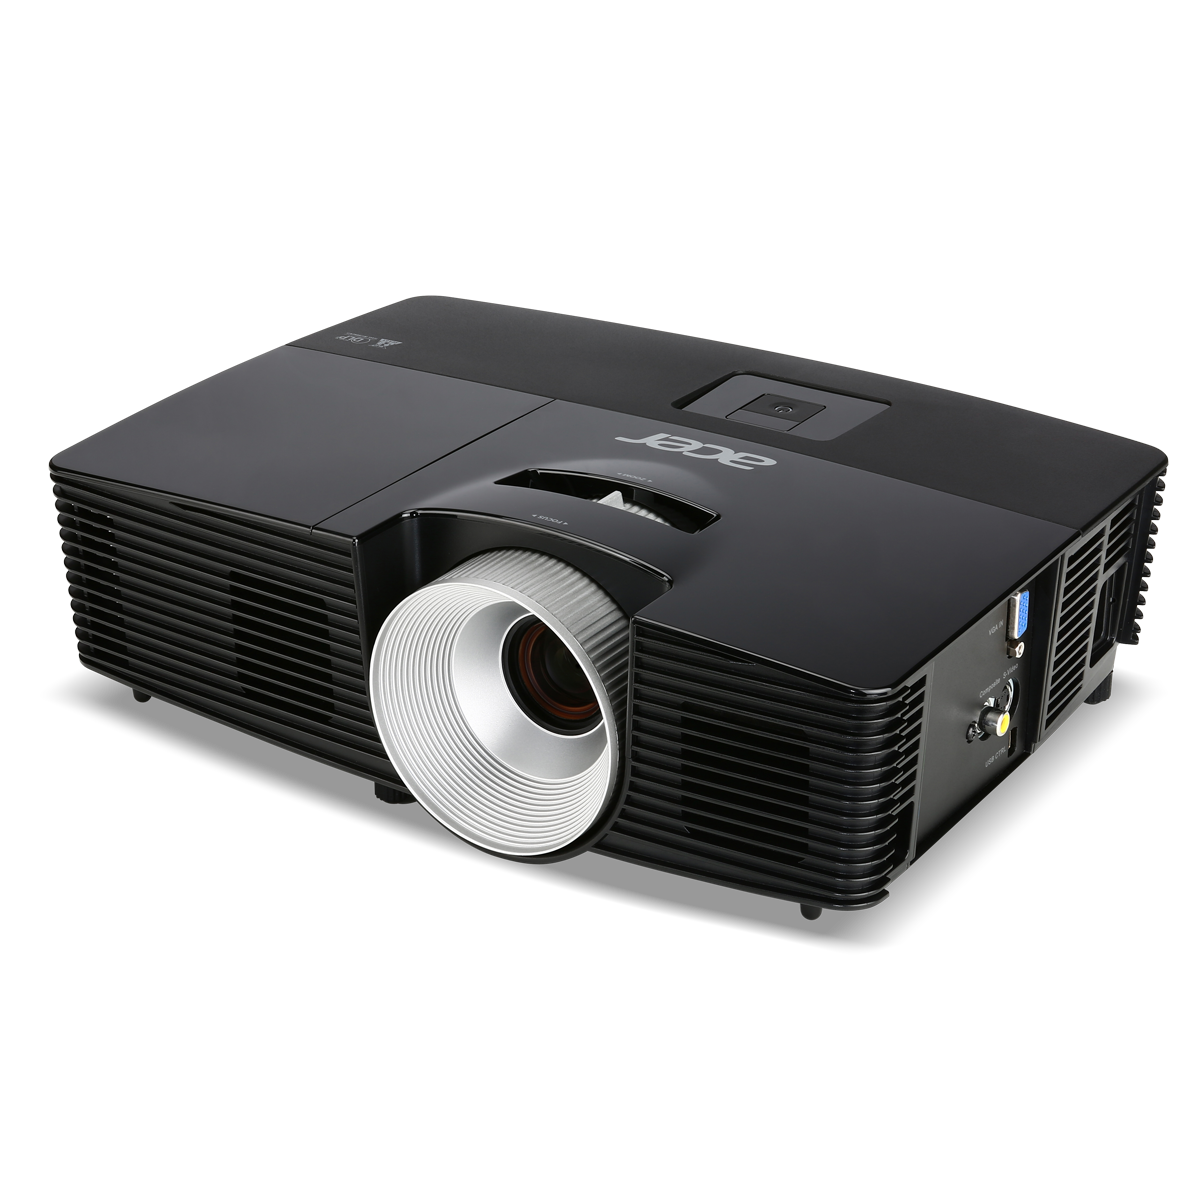 Proyector Acer X113 DLP